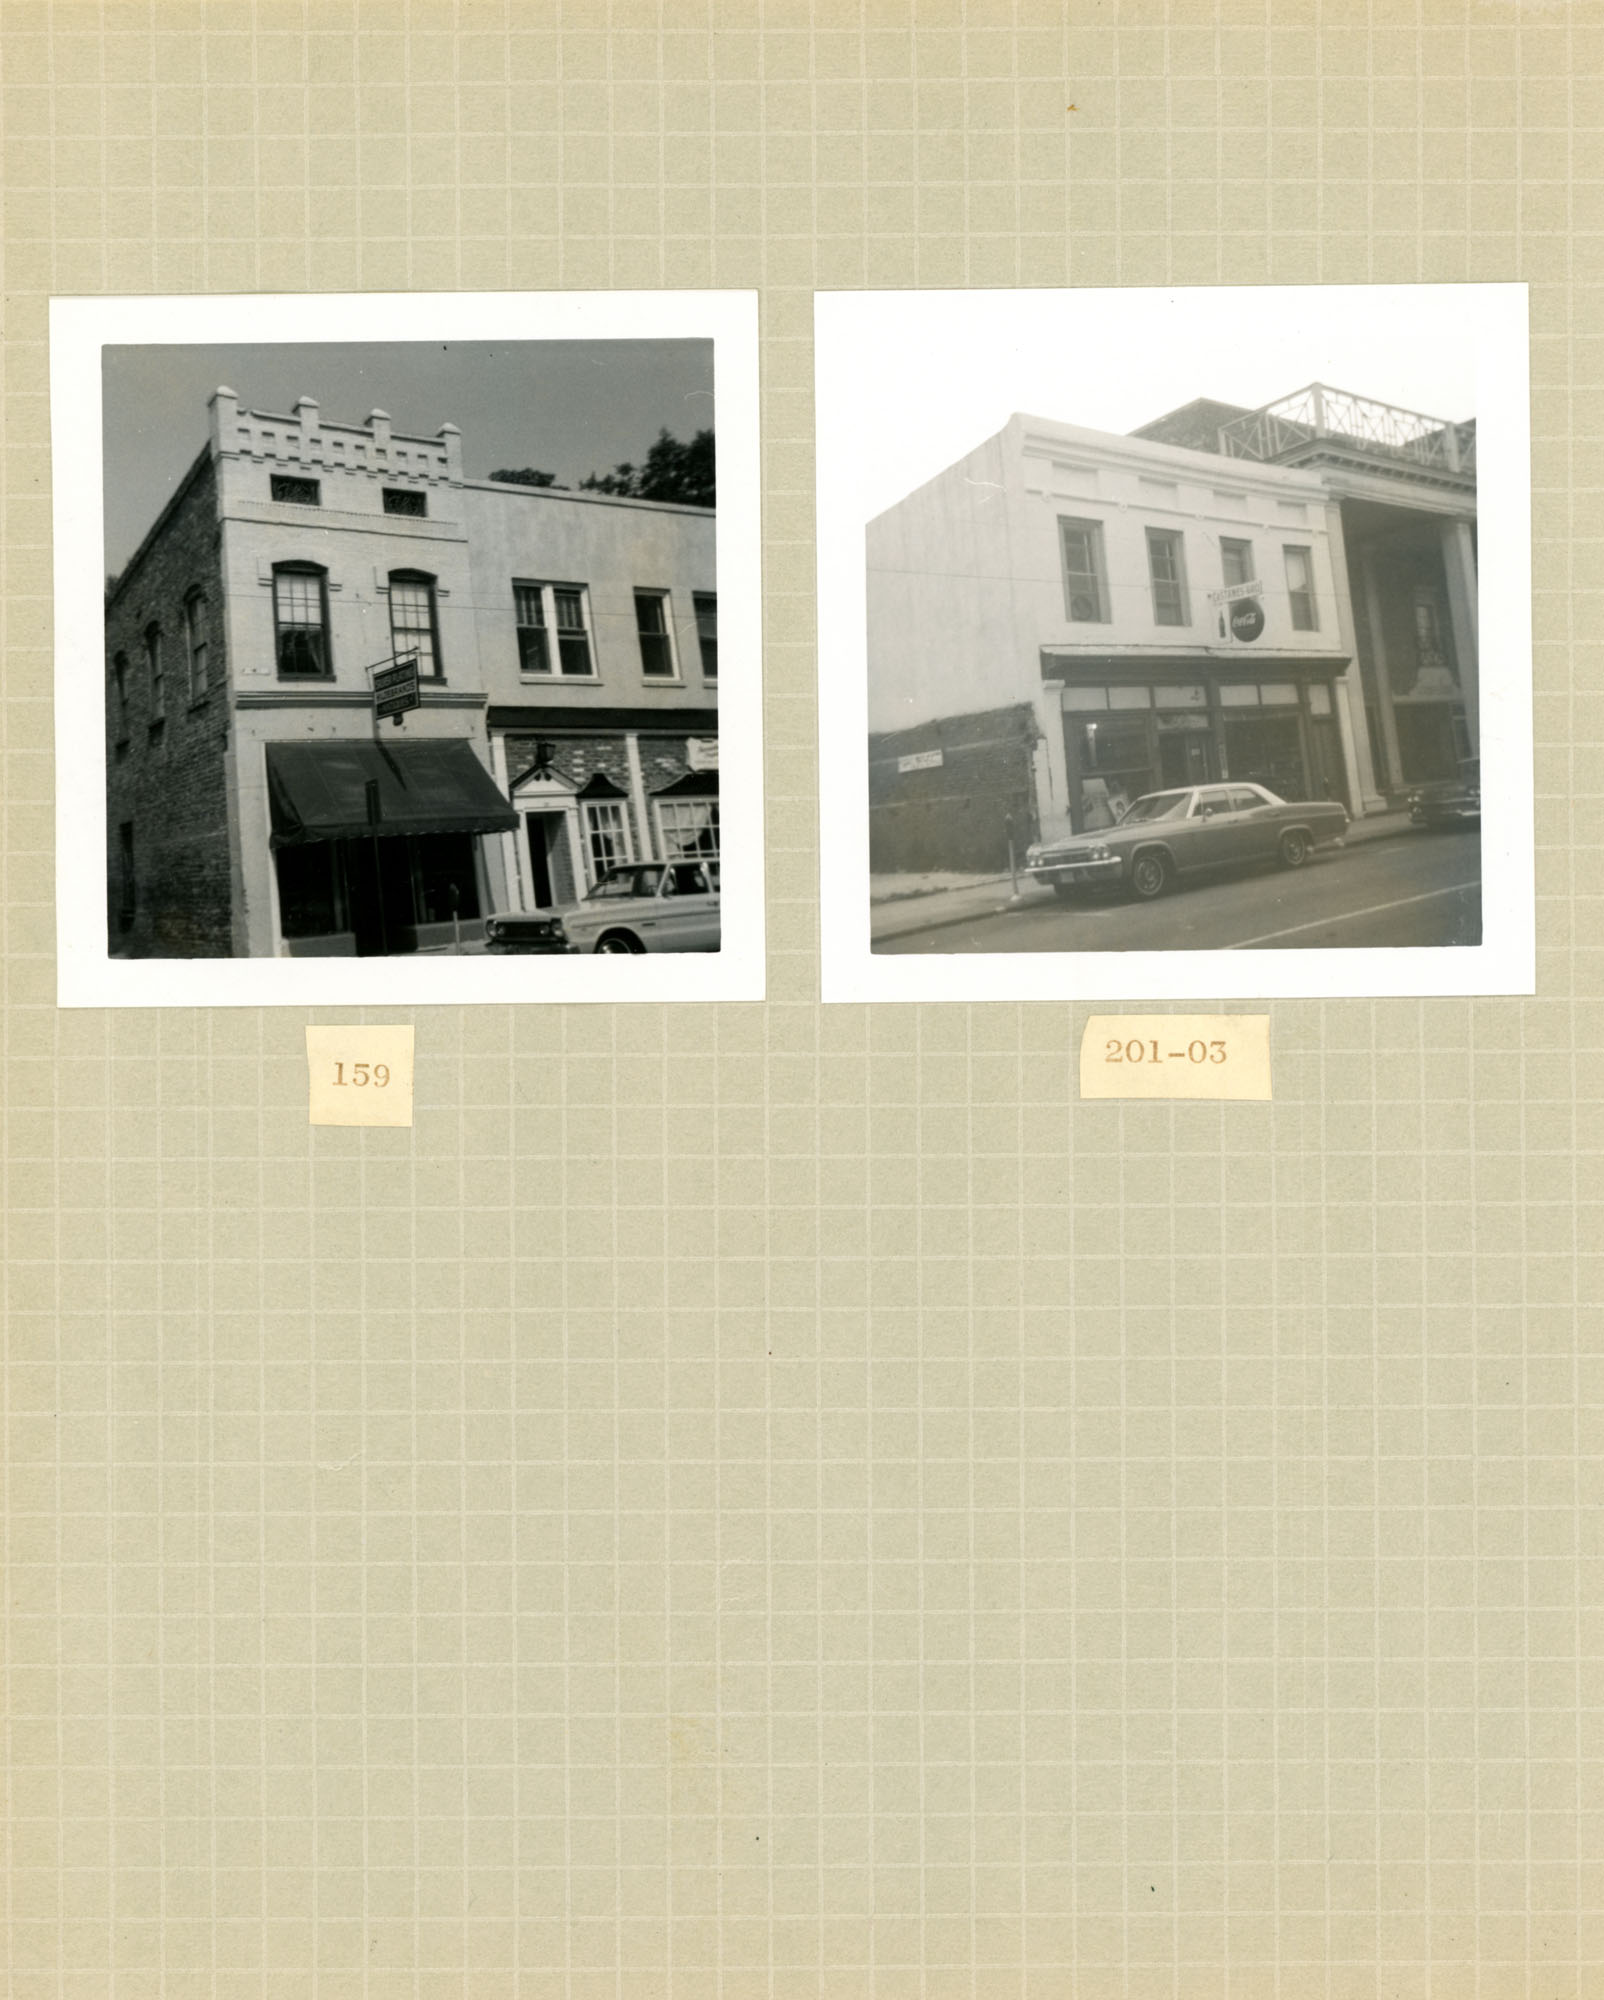 King Street Survey Photo Album, Page 1: 159-161 King Street / 201-203 King Street